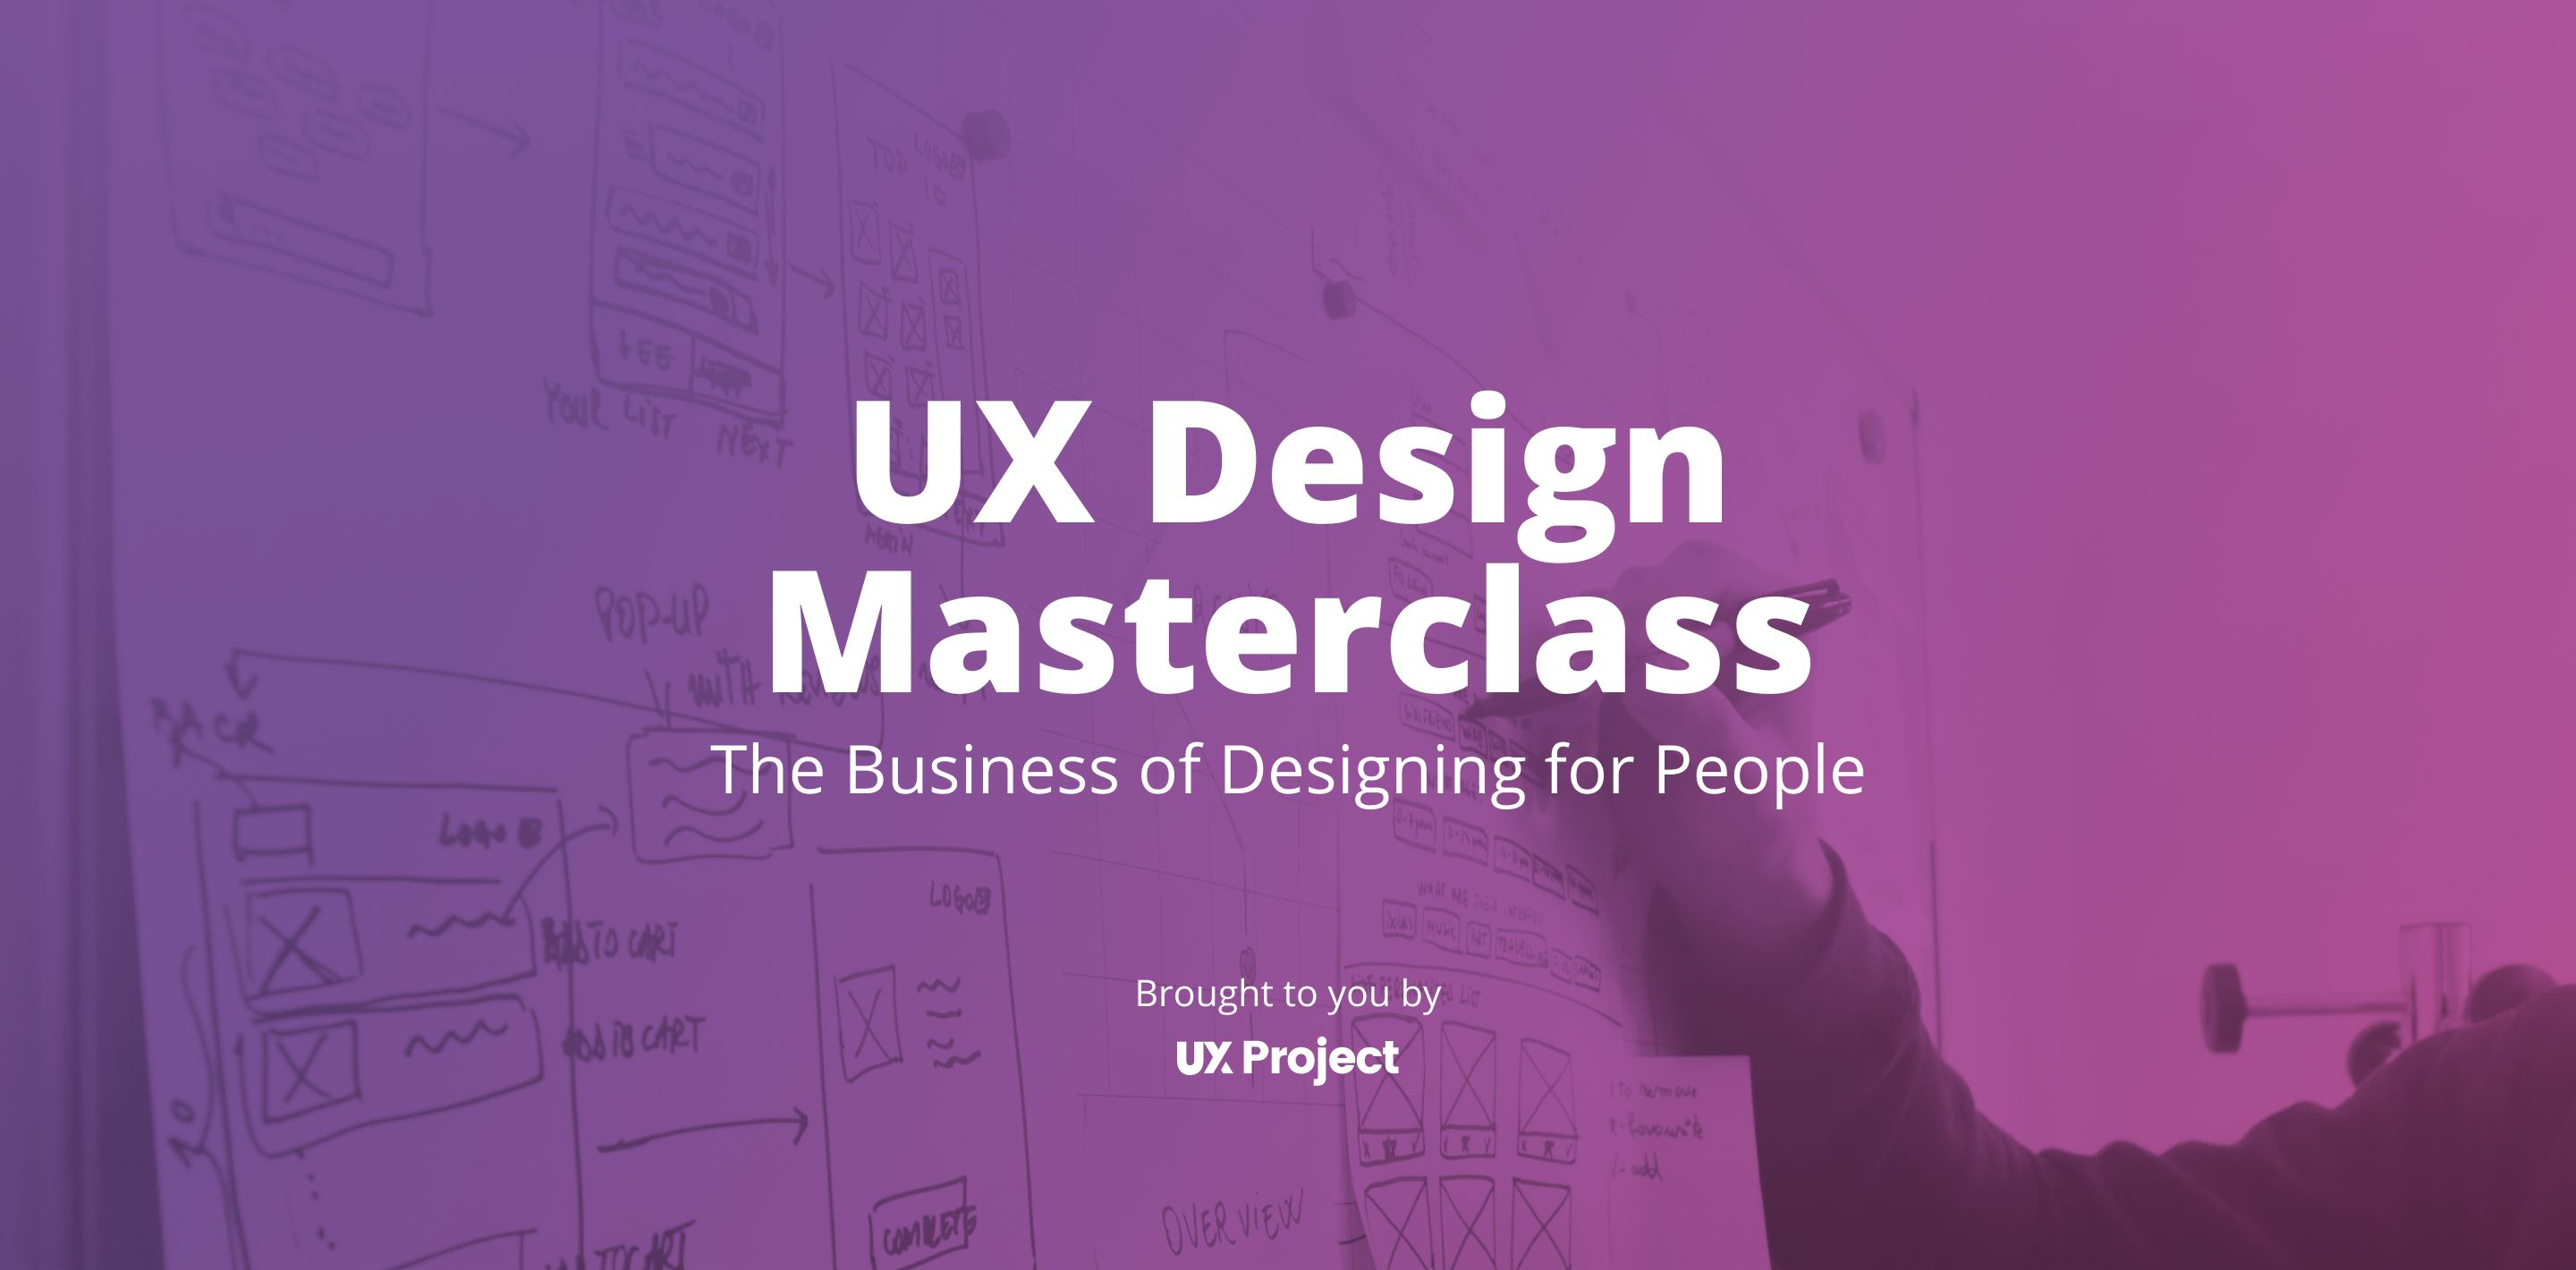 UX Design Masterclass: The Business of Designing for People